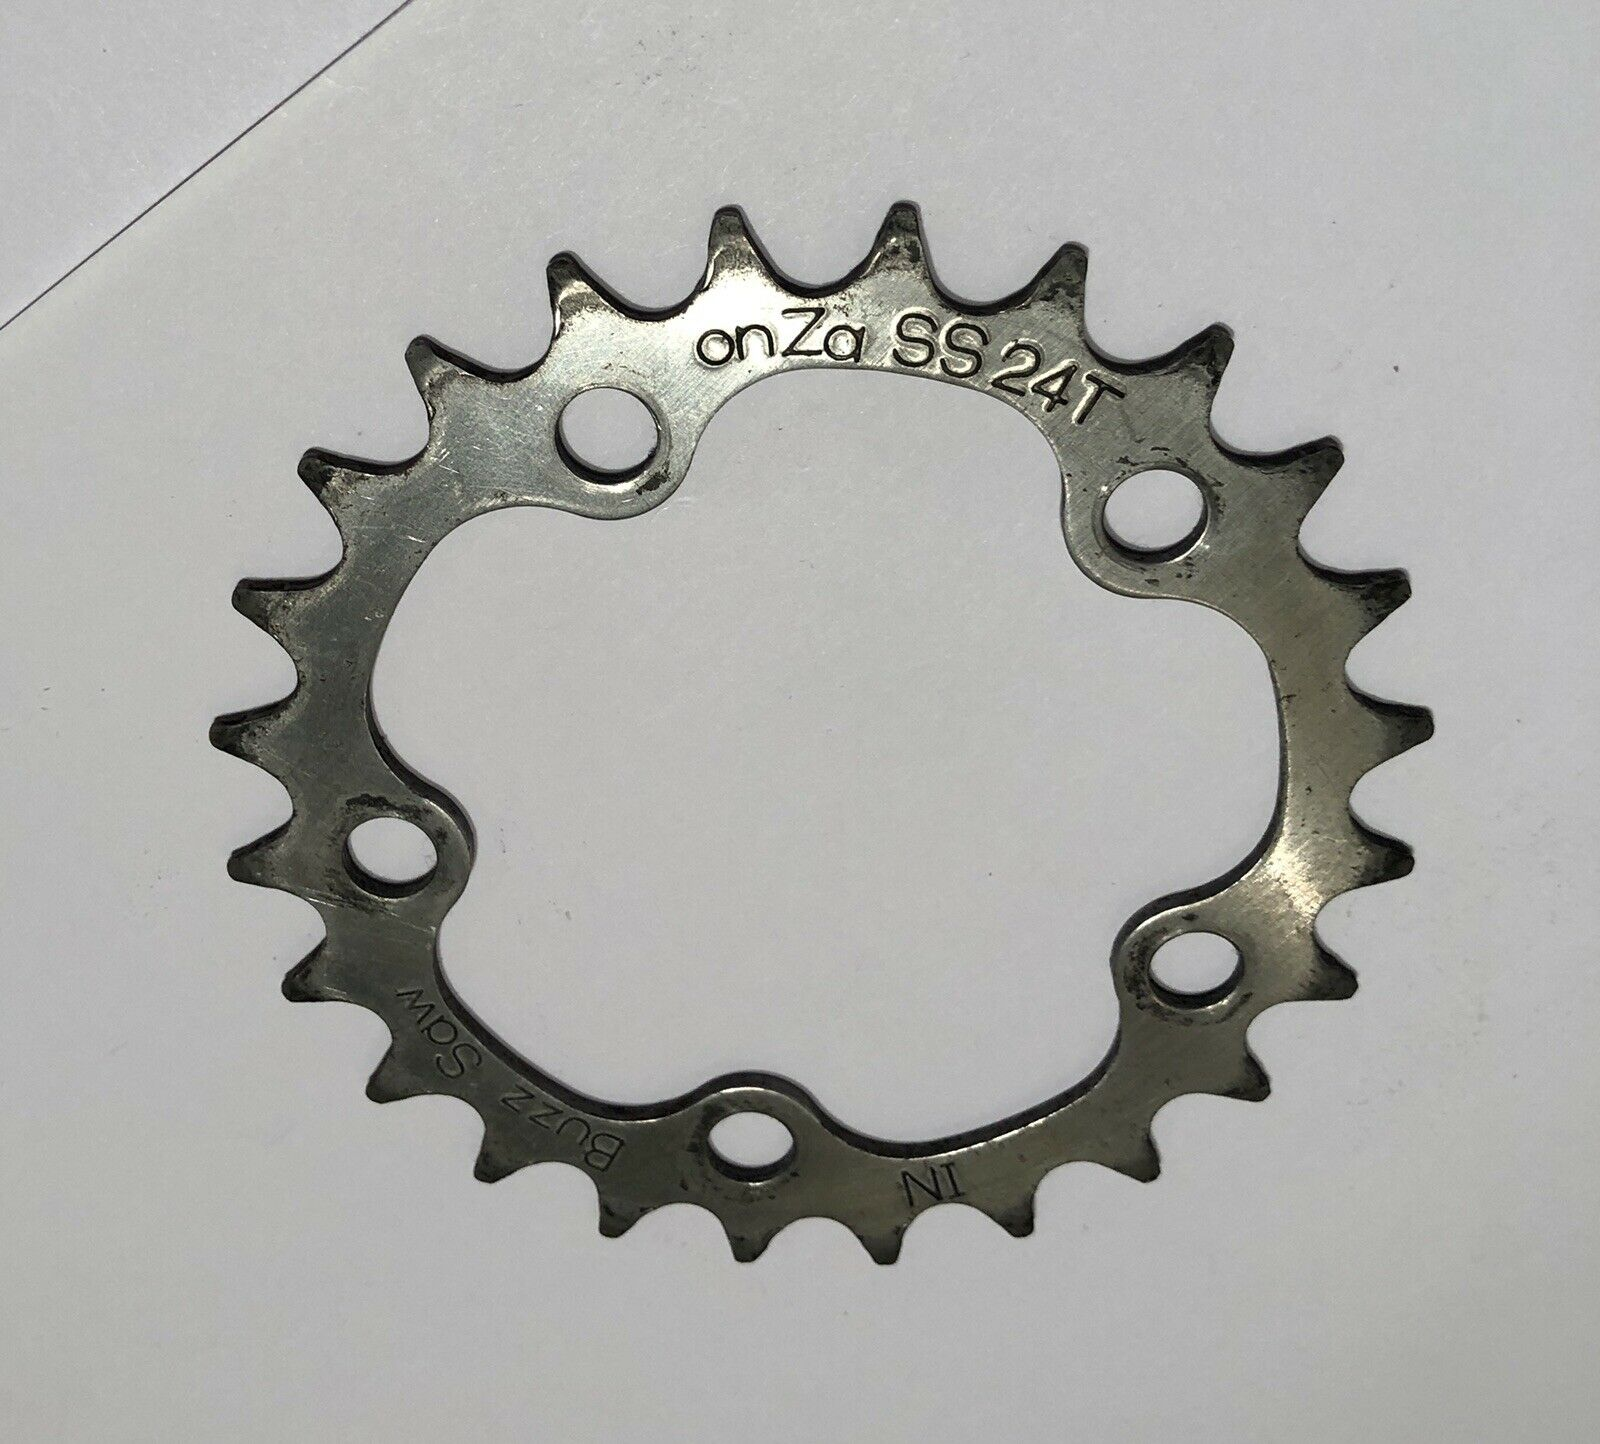 VERY RARE ONZA BUZZ SAW 24T 5 BOLT 74 BCD STAINLESS STEEL GRANNY GEAR CHAIN RING